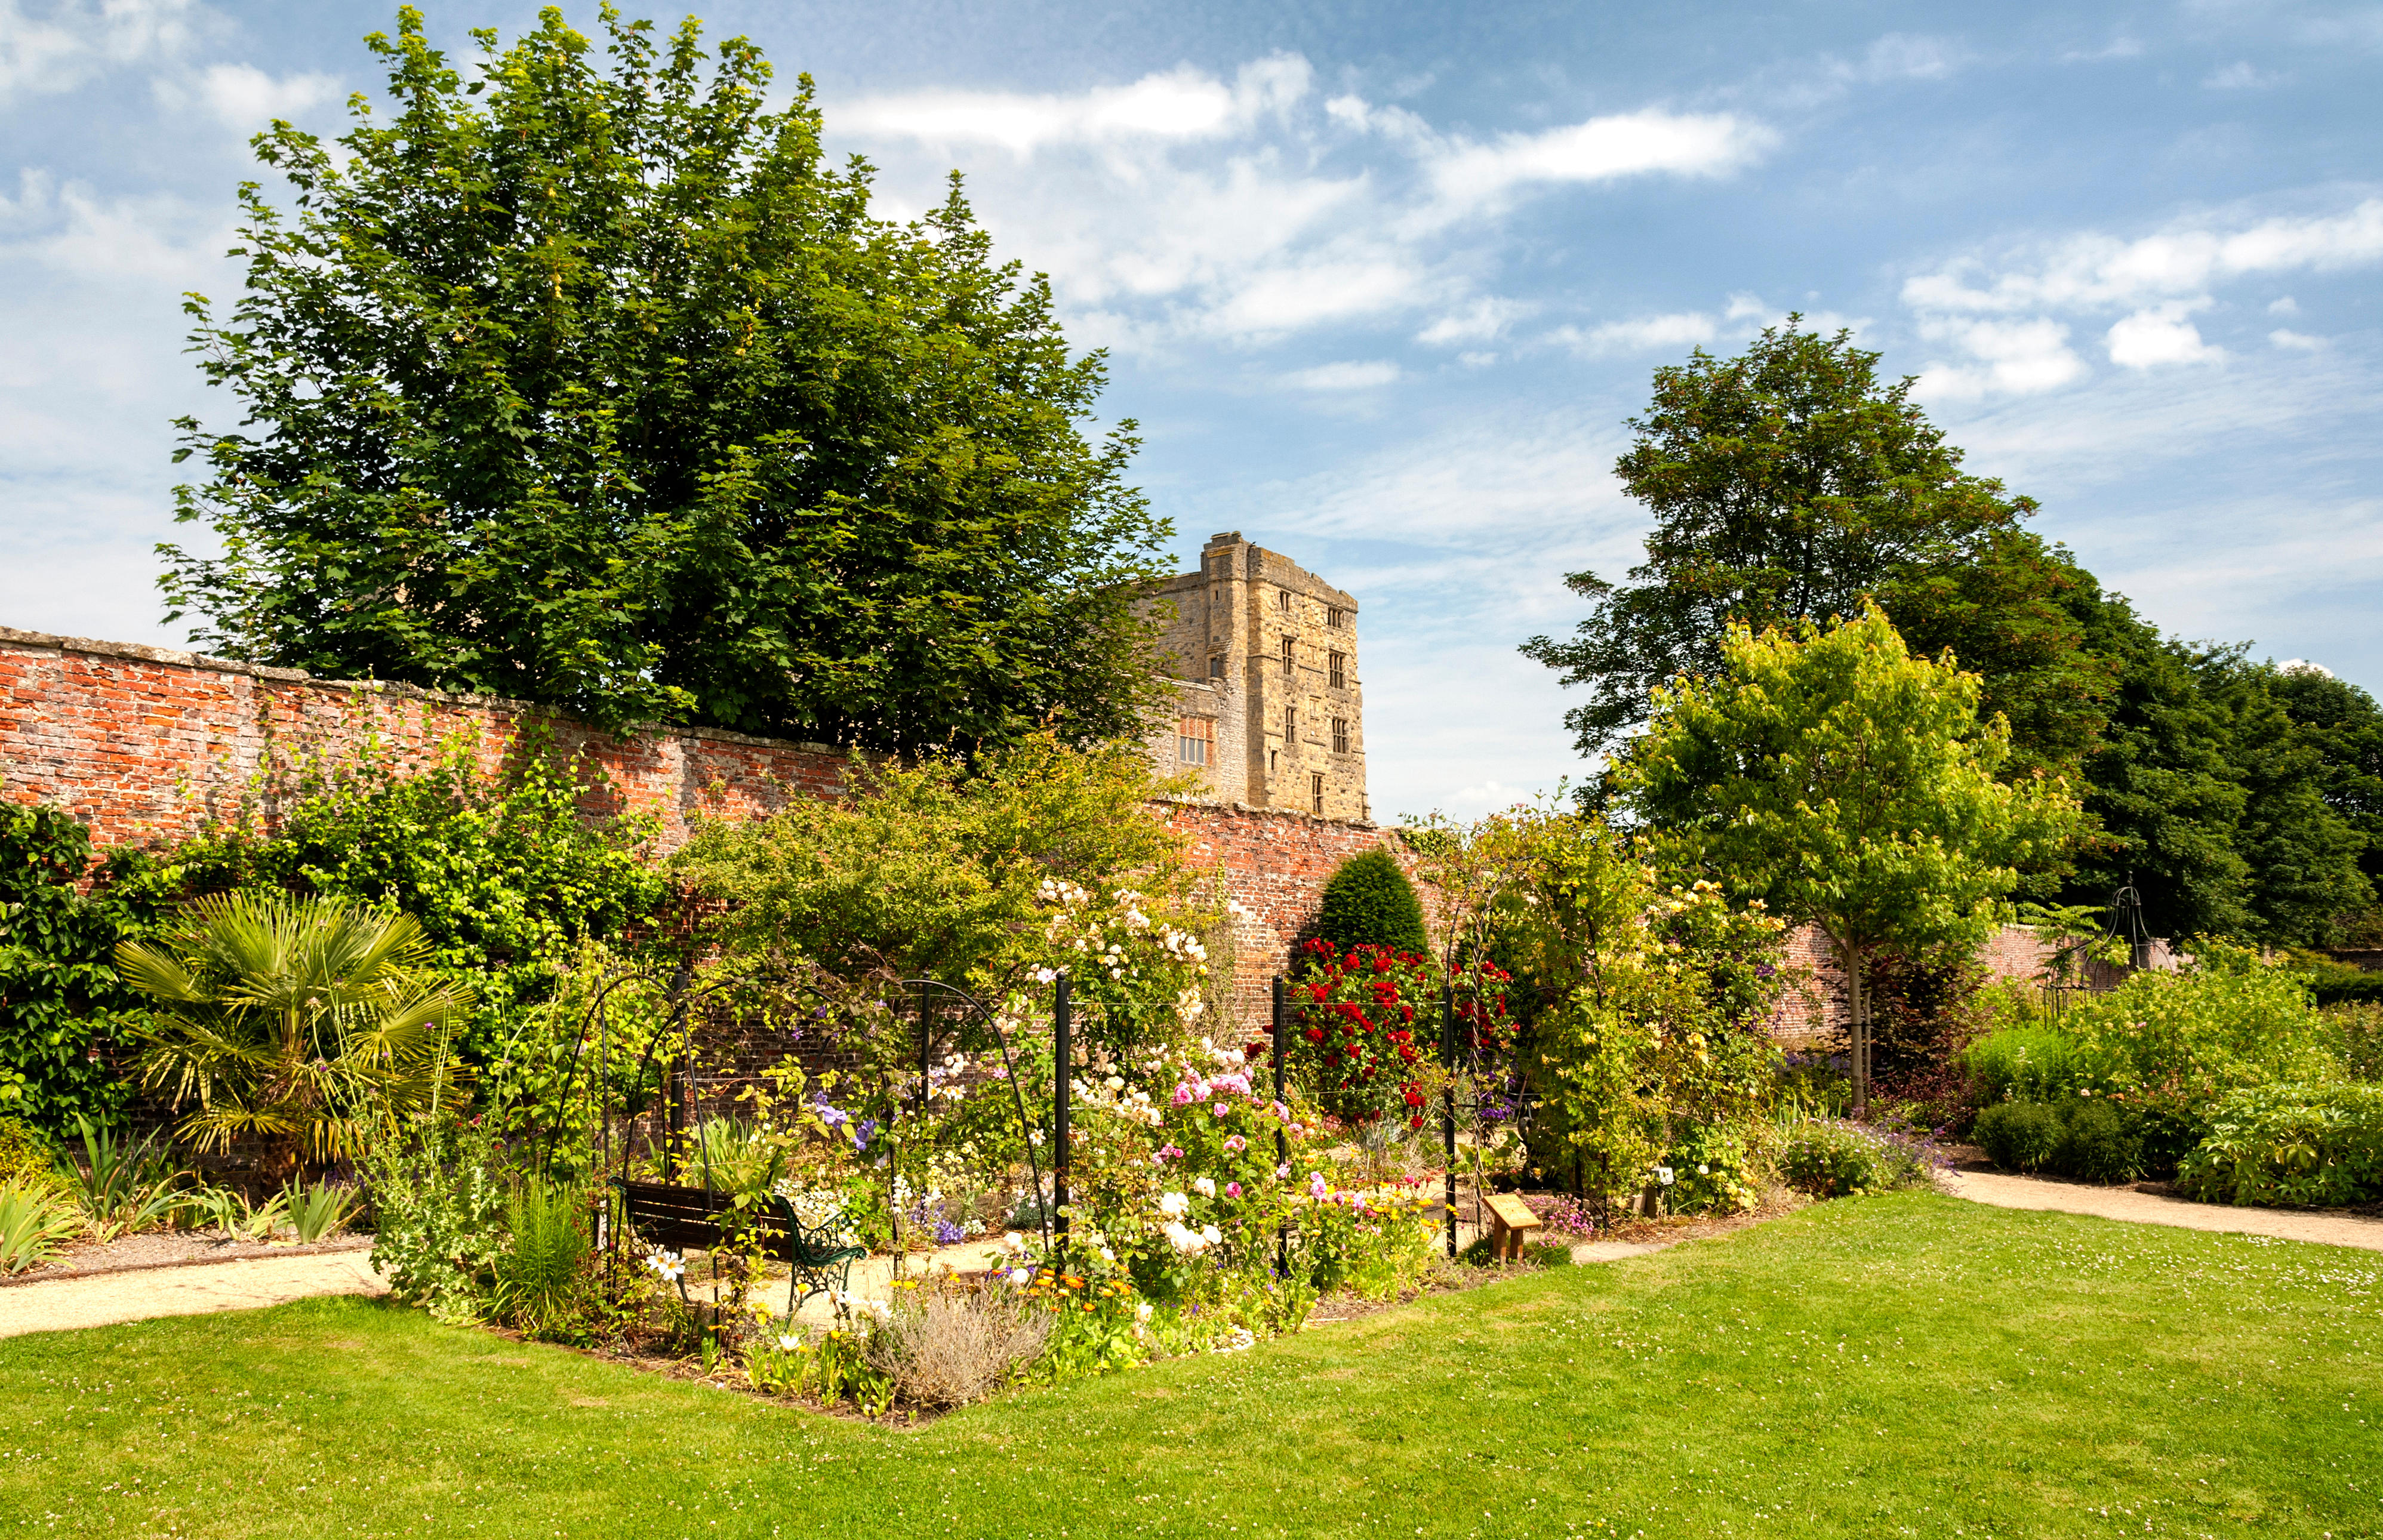 The Helmsley Walled Garden in North Yorks in a place for all to enjoy